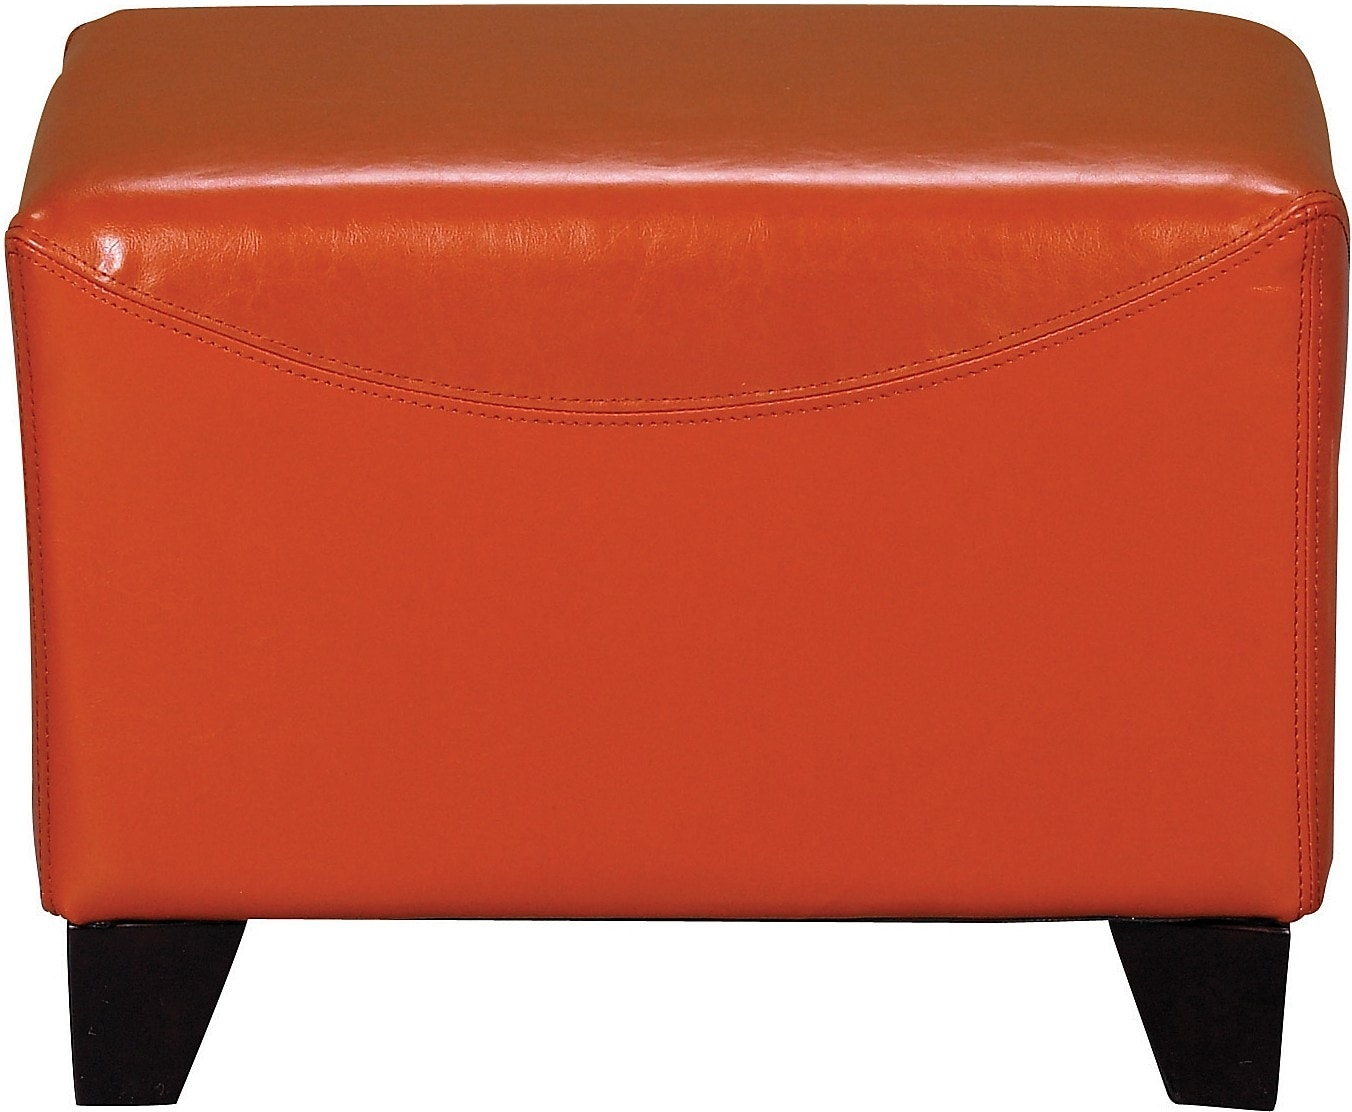 Living Room Furniture - Bonded Leather Ottoman - Spice